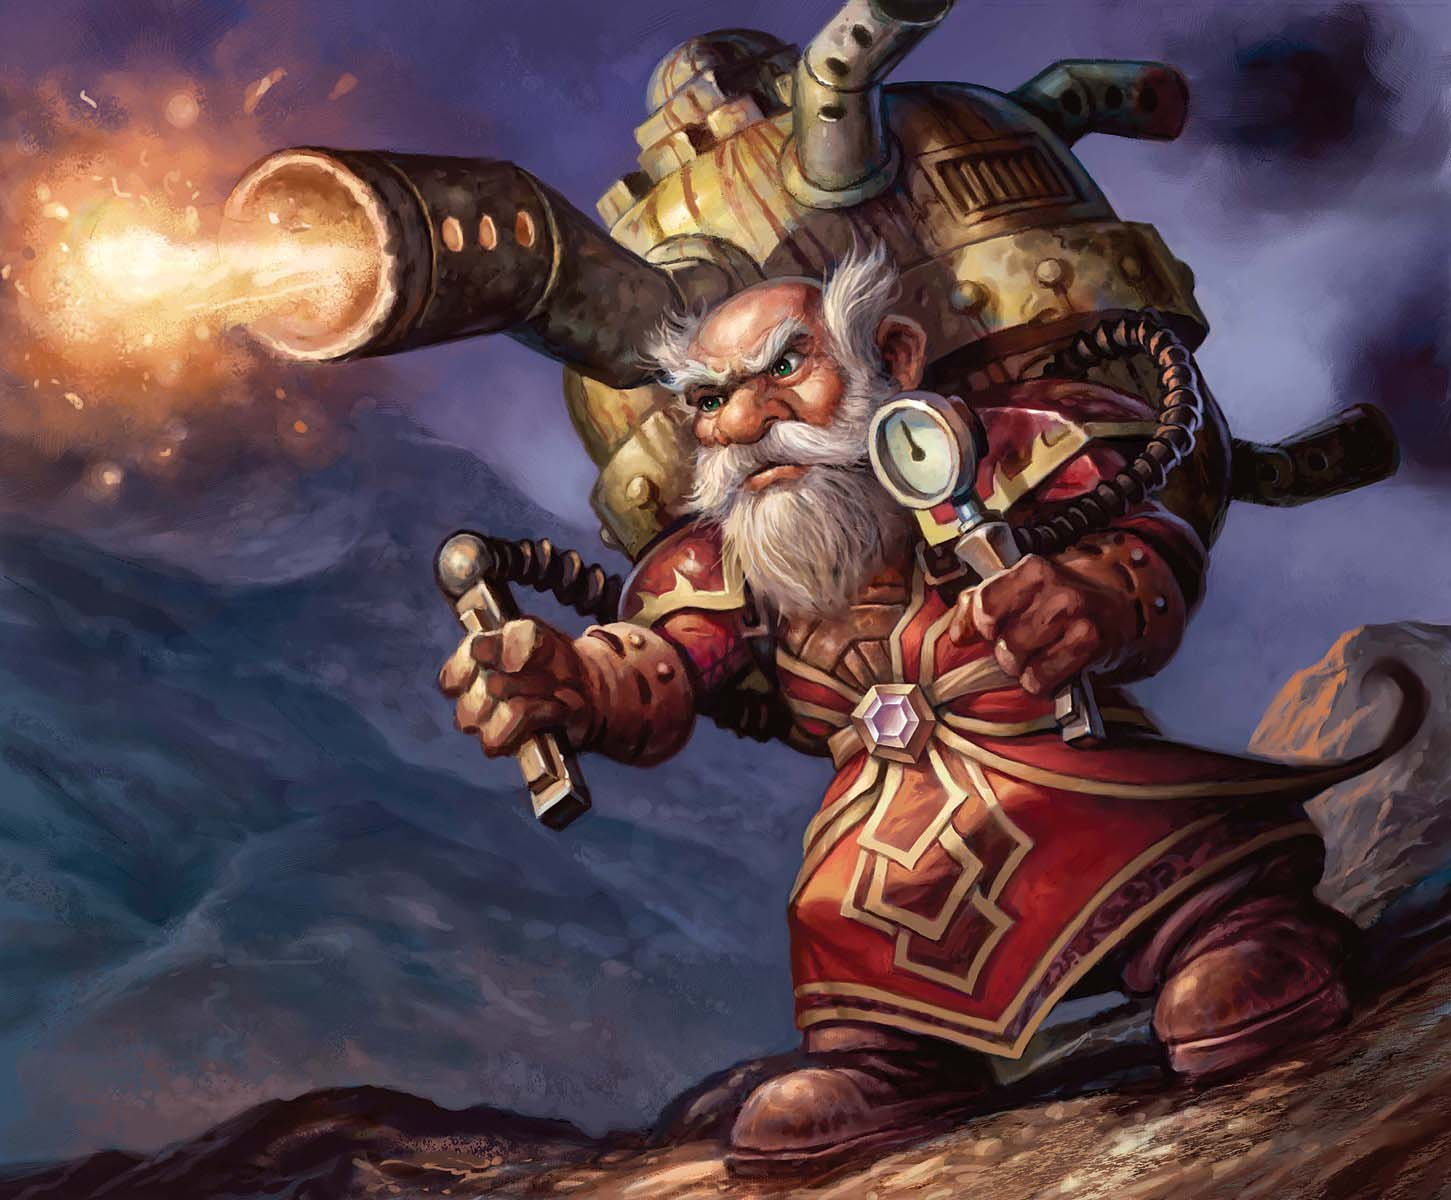 Gnomes from wow exposed scenes